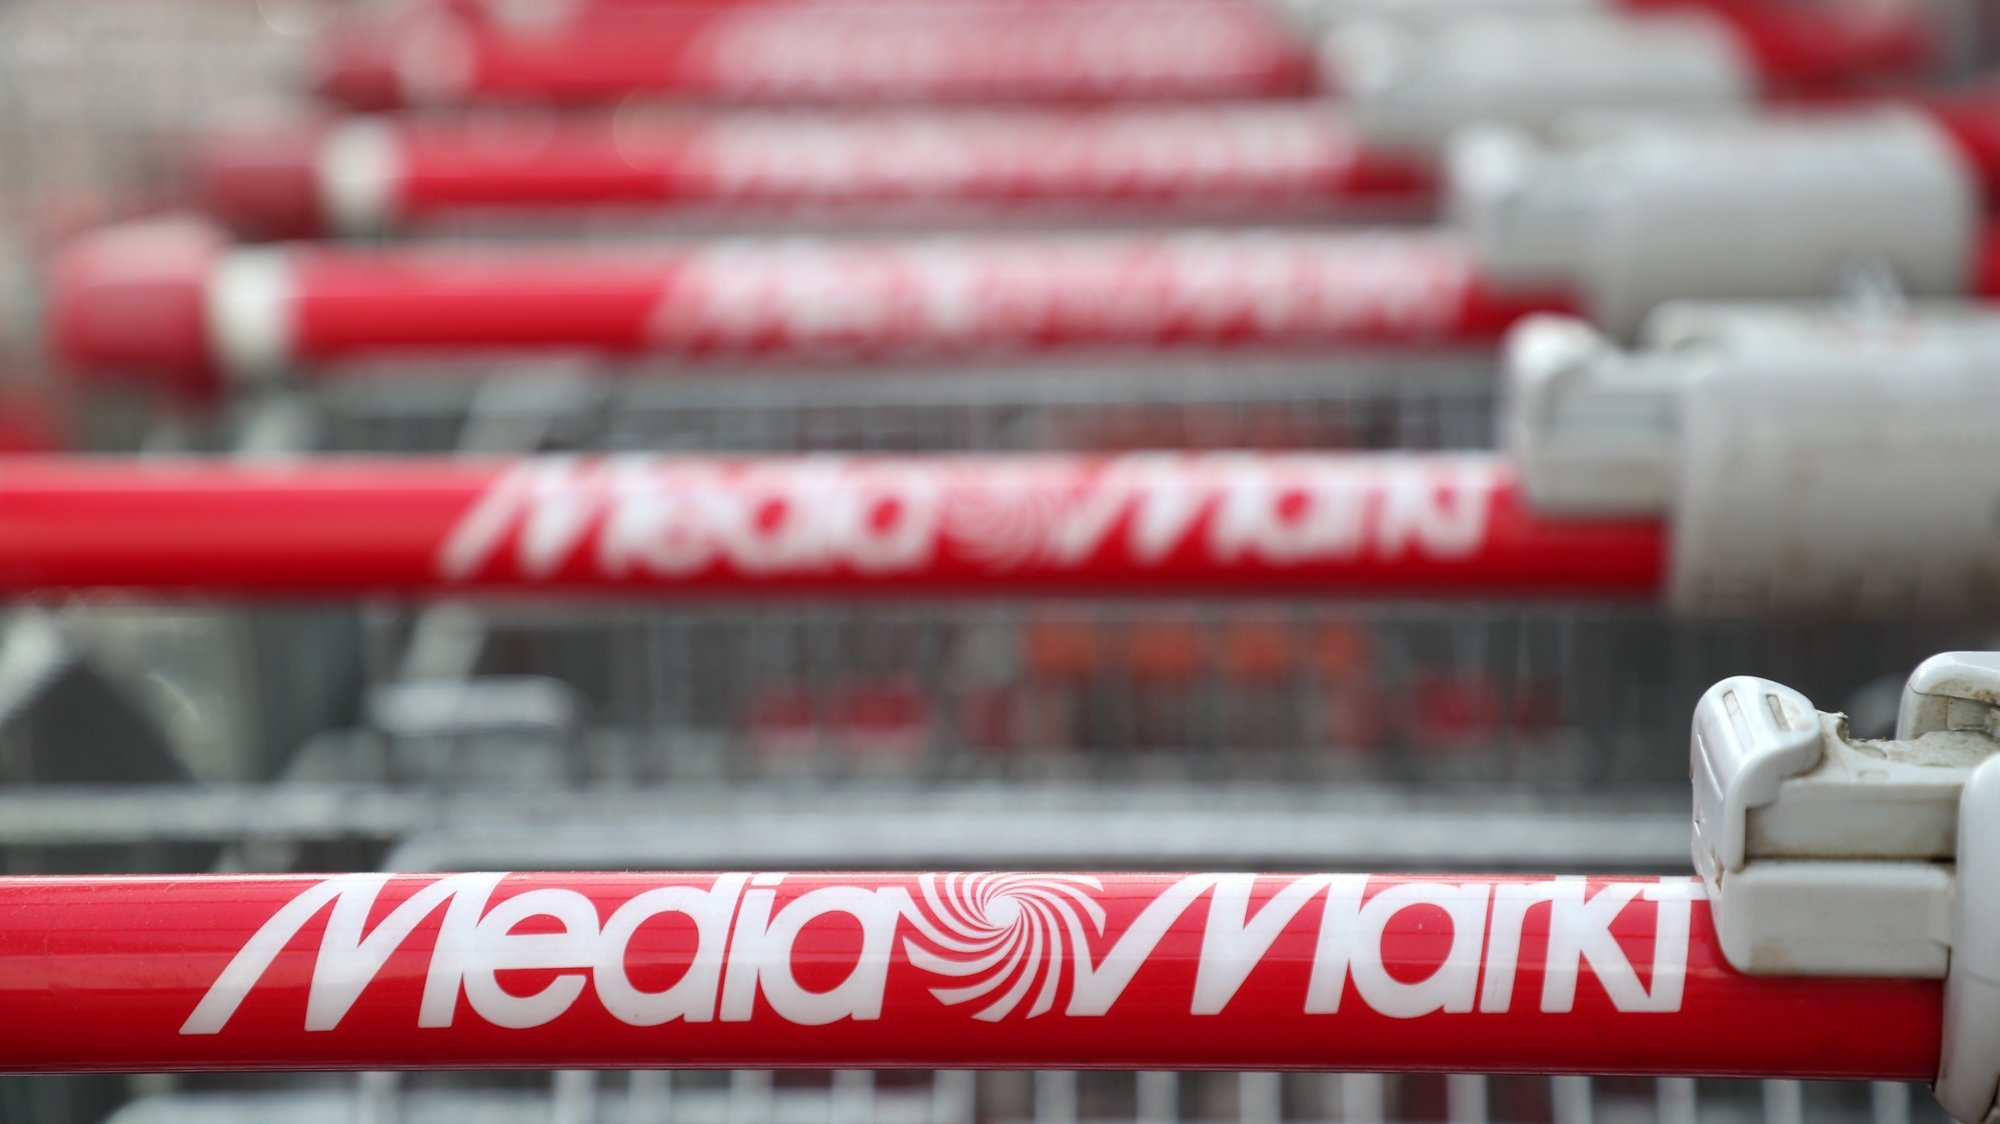 epa07366552 Mediamarkt logo on a shopping trolley at a Mediamarkt during the company's general assembly meeting in Duesseldorf, Germany, 13 February 2019. Ceconomy AG is a listed German trading company and operates the consumer electronics chains Mediamarkt and Saturn.  After a crisis year, the electronics trading holding Ceconomy prepares its shareholders for hard cuts, the share had lost two thirds of its value last year.  EPA/FRIEDEMANN VOGEL